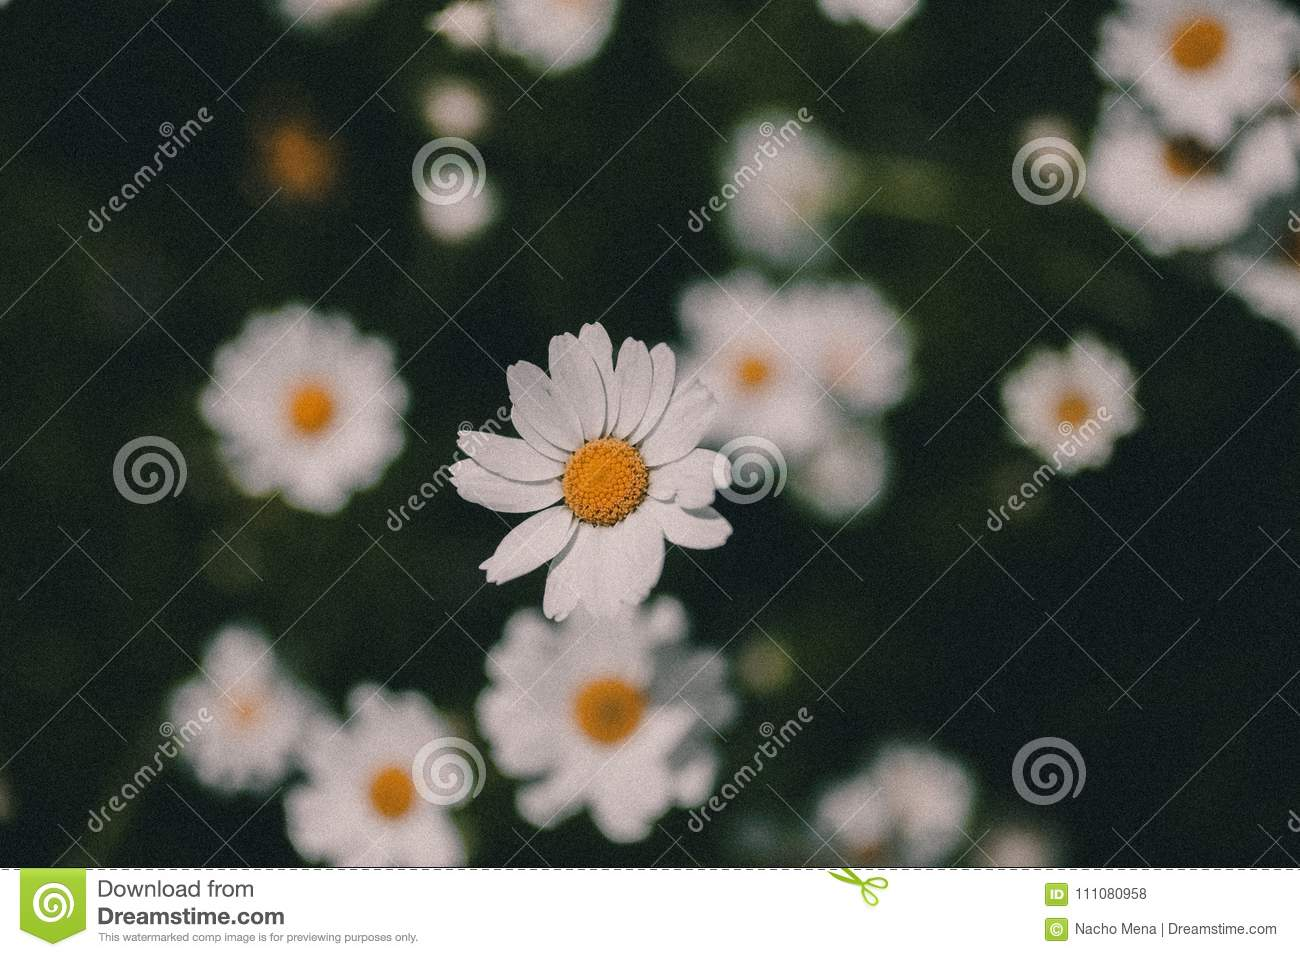 Daisies vintage background closeup of daisy flower in vintage style royalty free stock photo izmirmasajfo Image collections